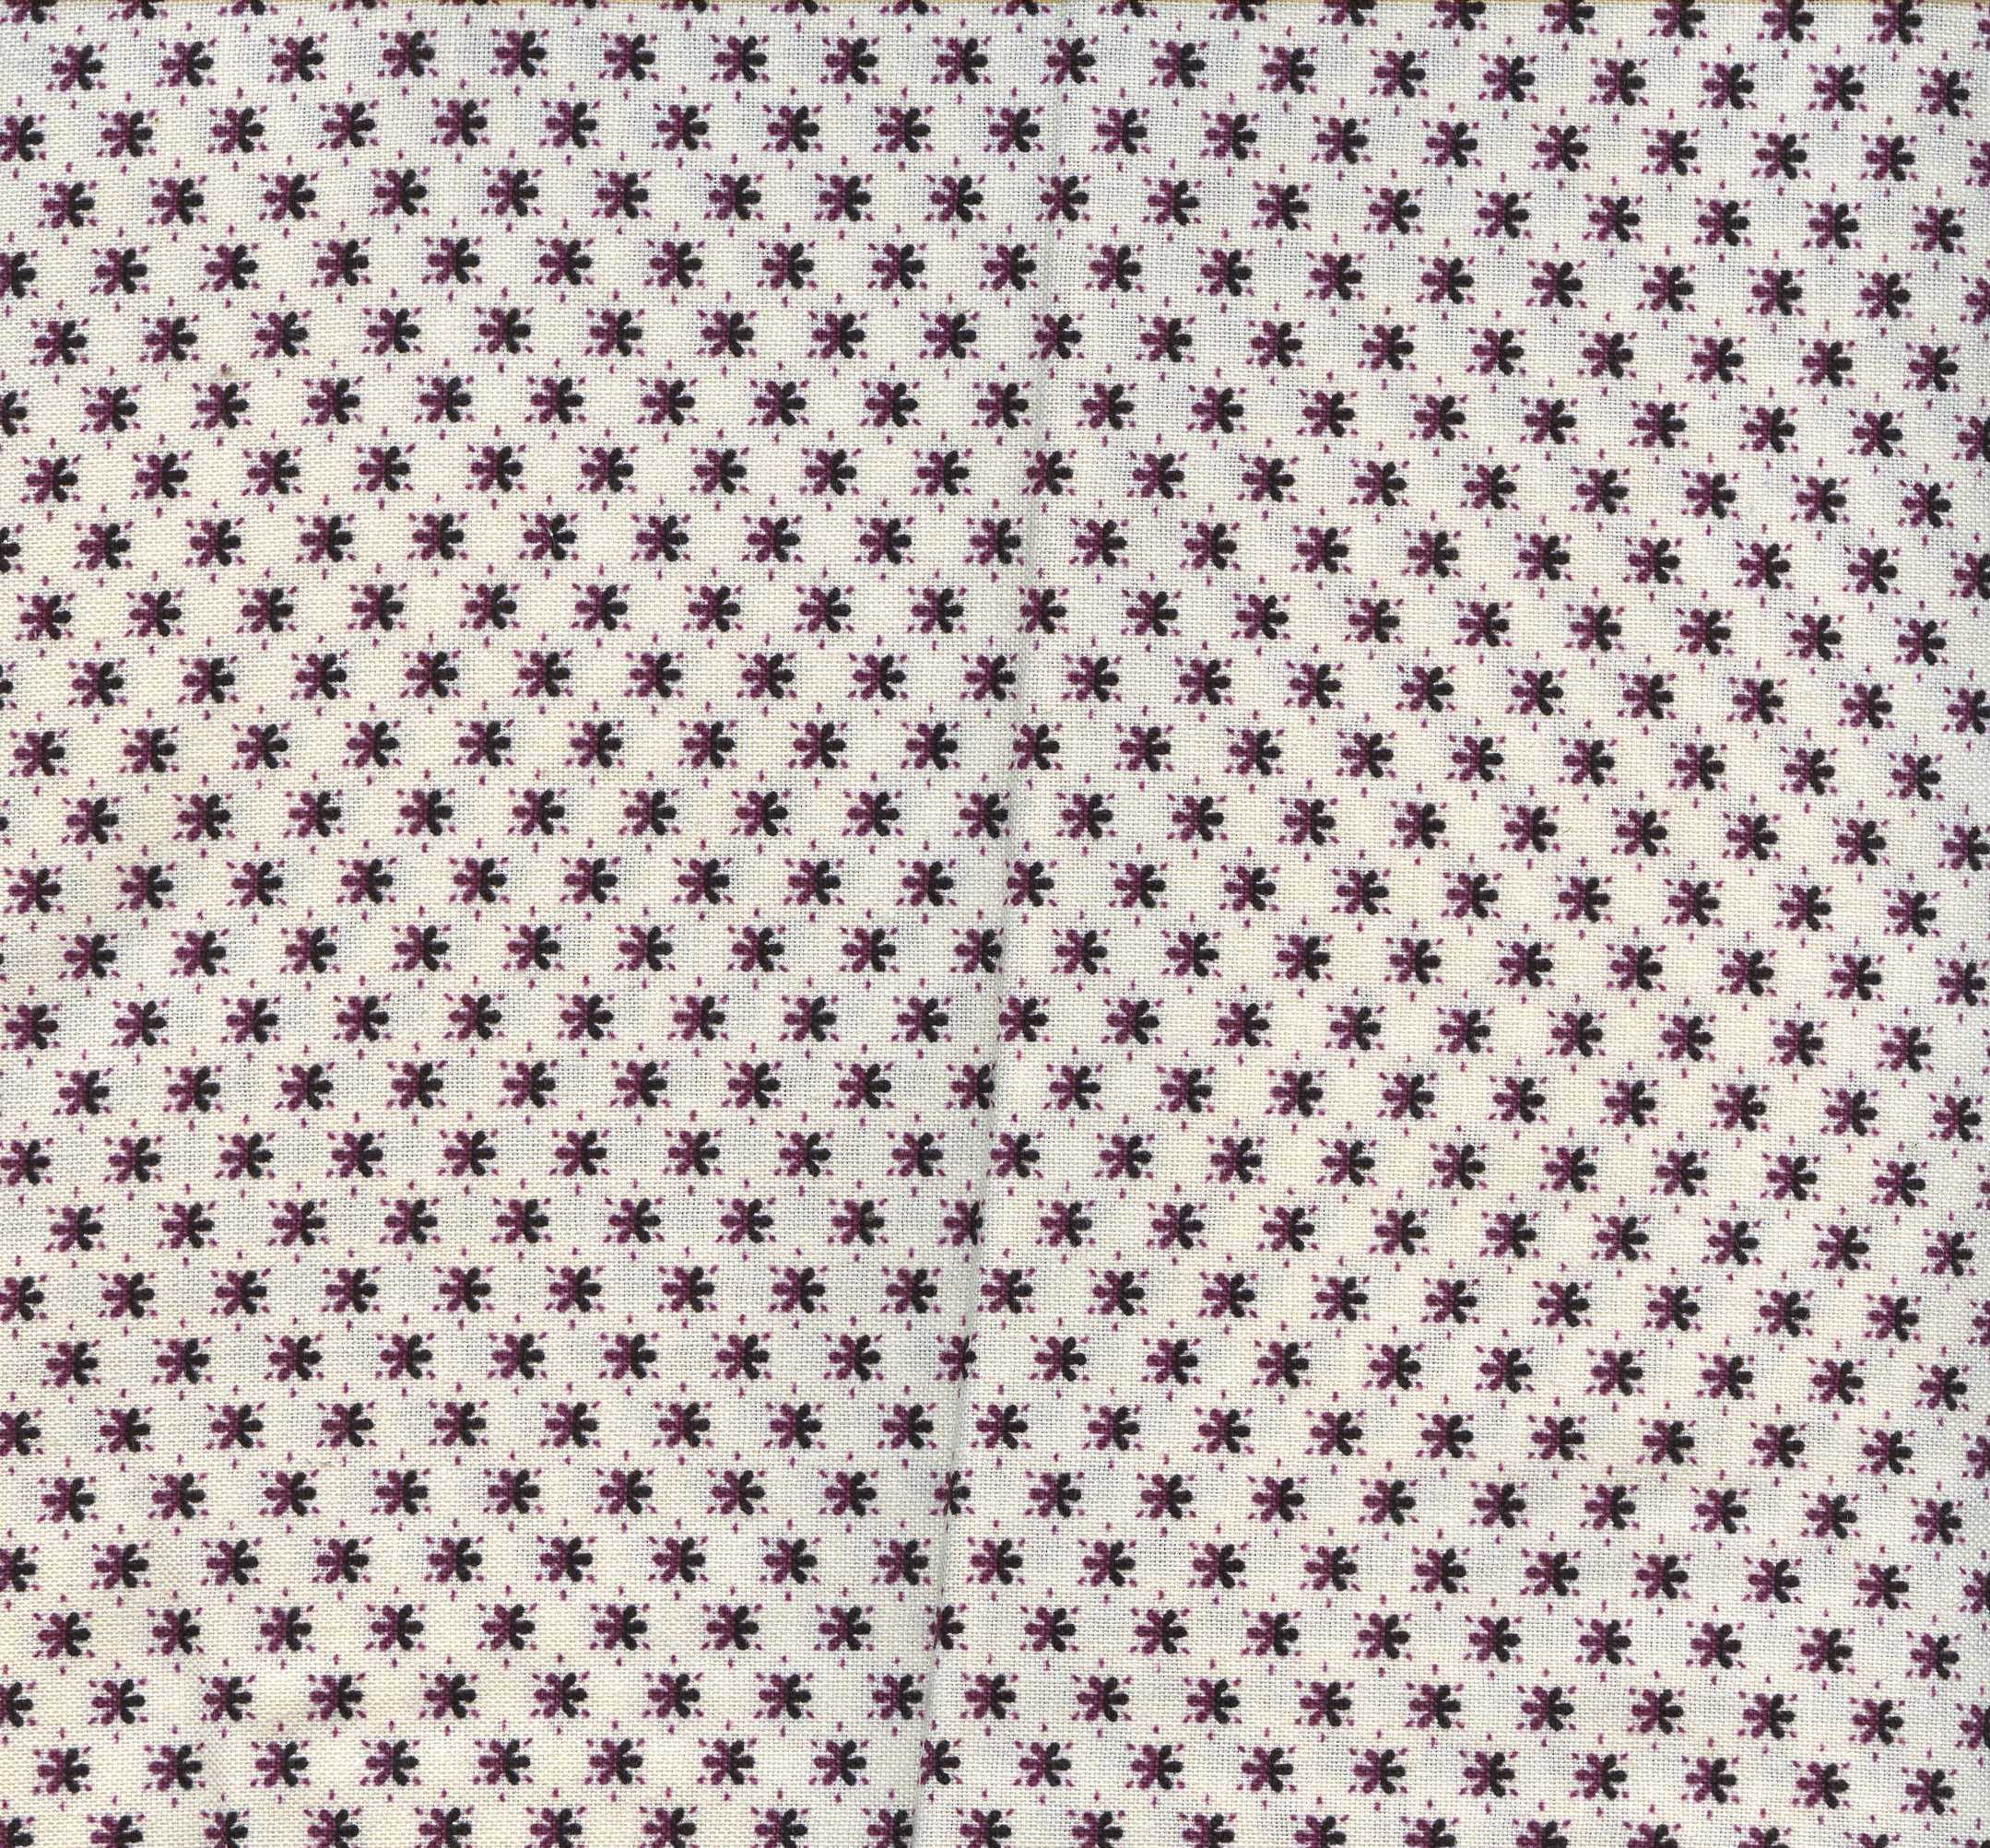 Crazy for Shelburn- Cream with Small Flowers